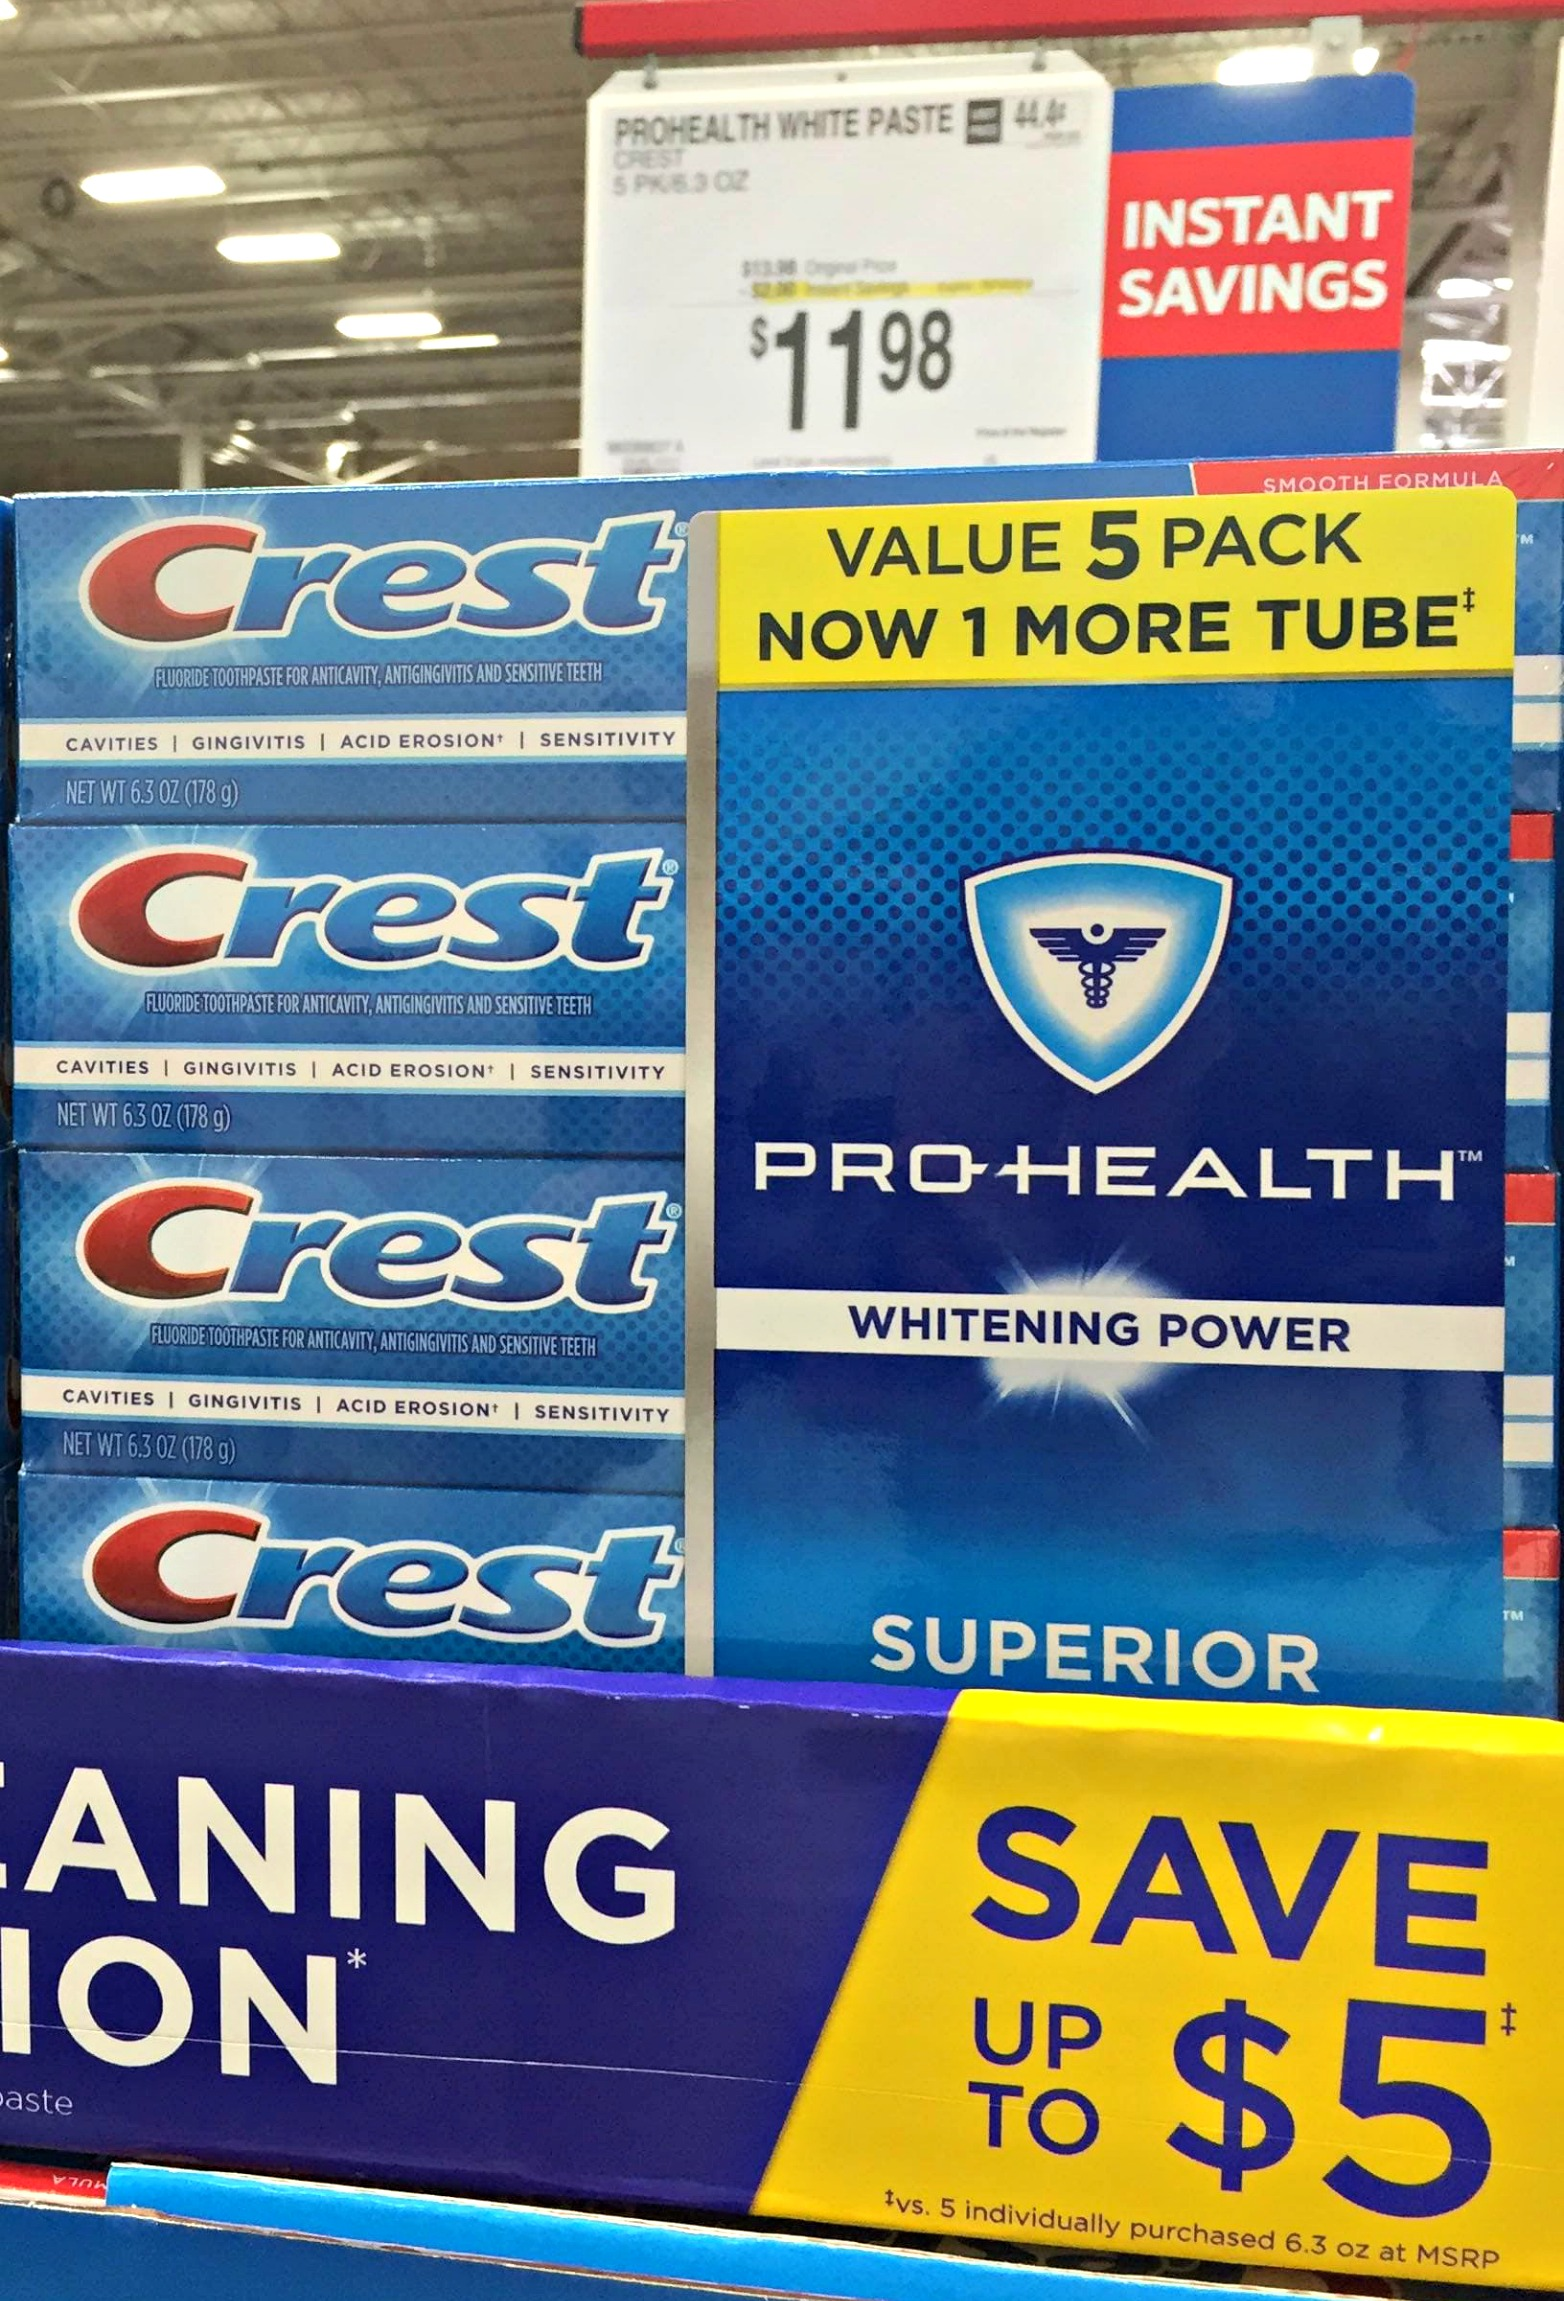 Fall is a great time to renew your focus on your healthy lifestyle. Keep your smile in tip top shape with Crest from Sam's Club.